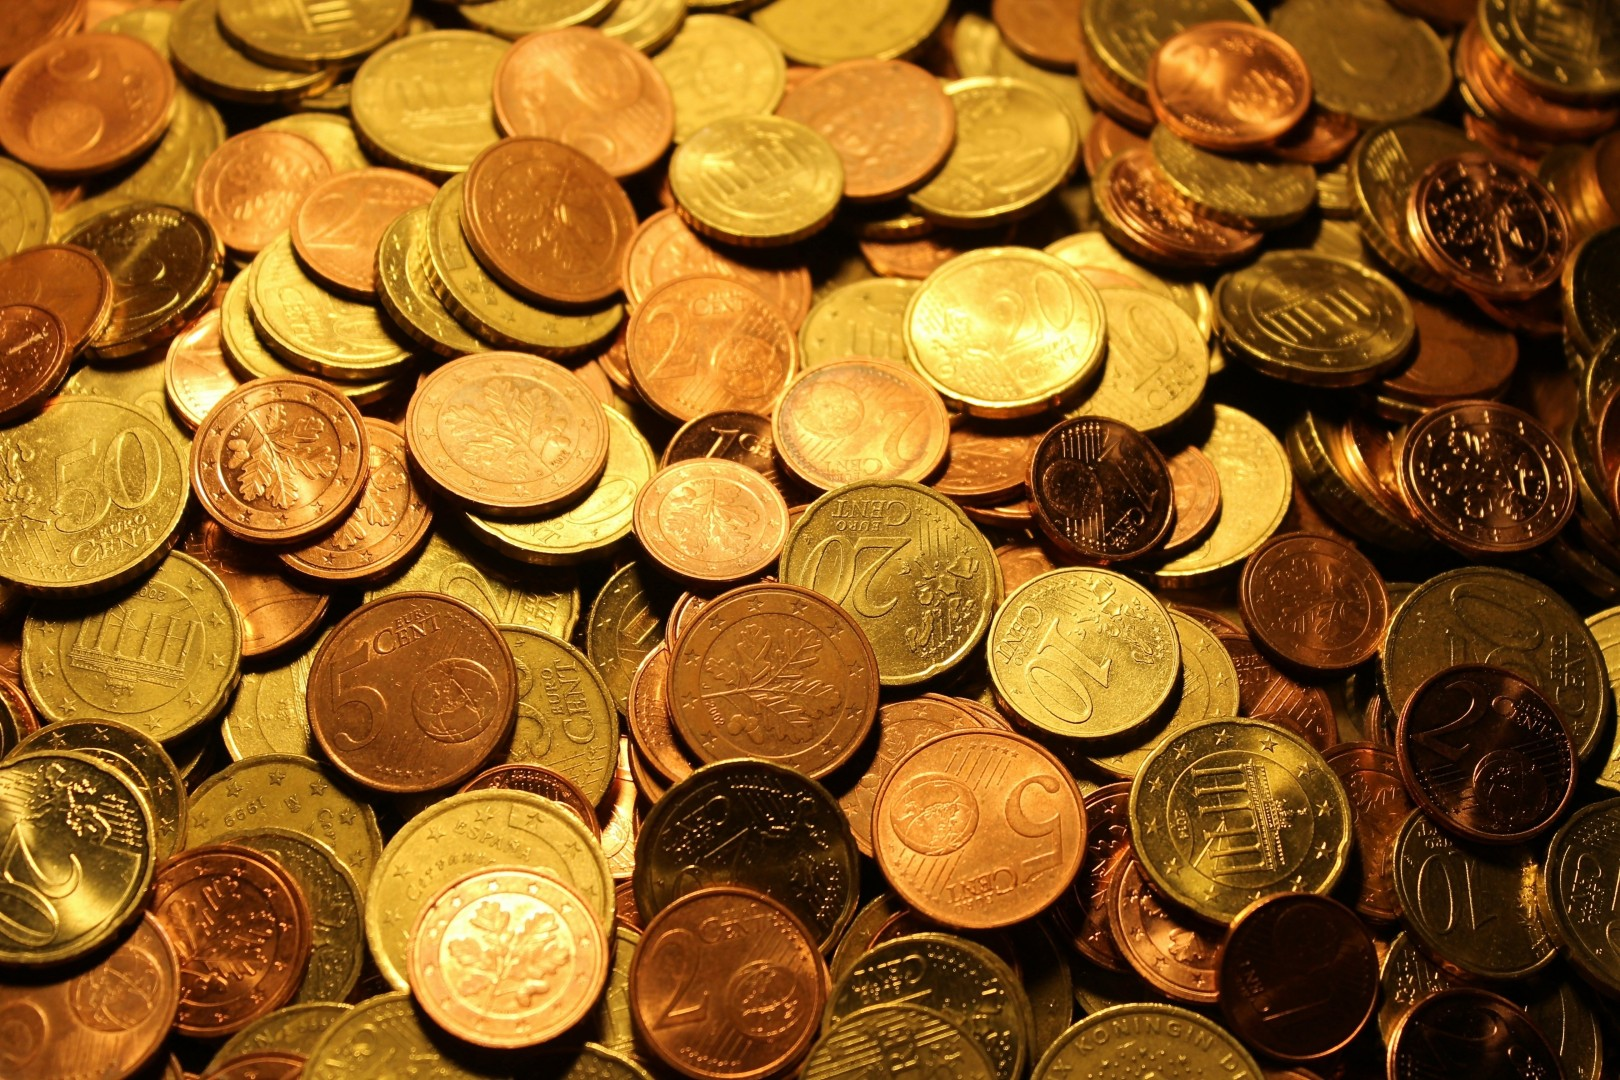 money-coins-euro-coins-currency-euro-metal